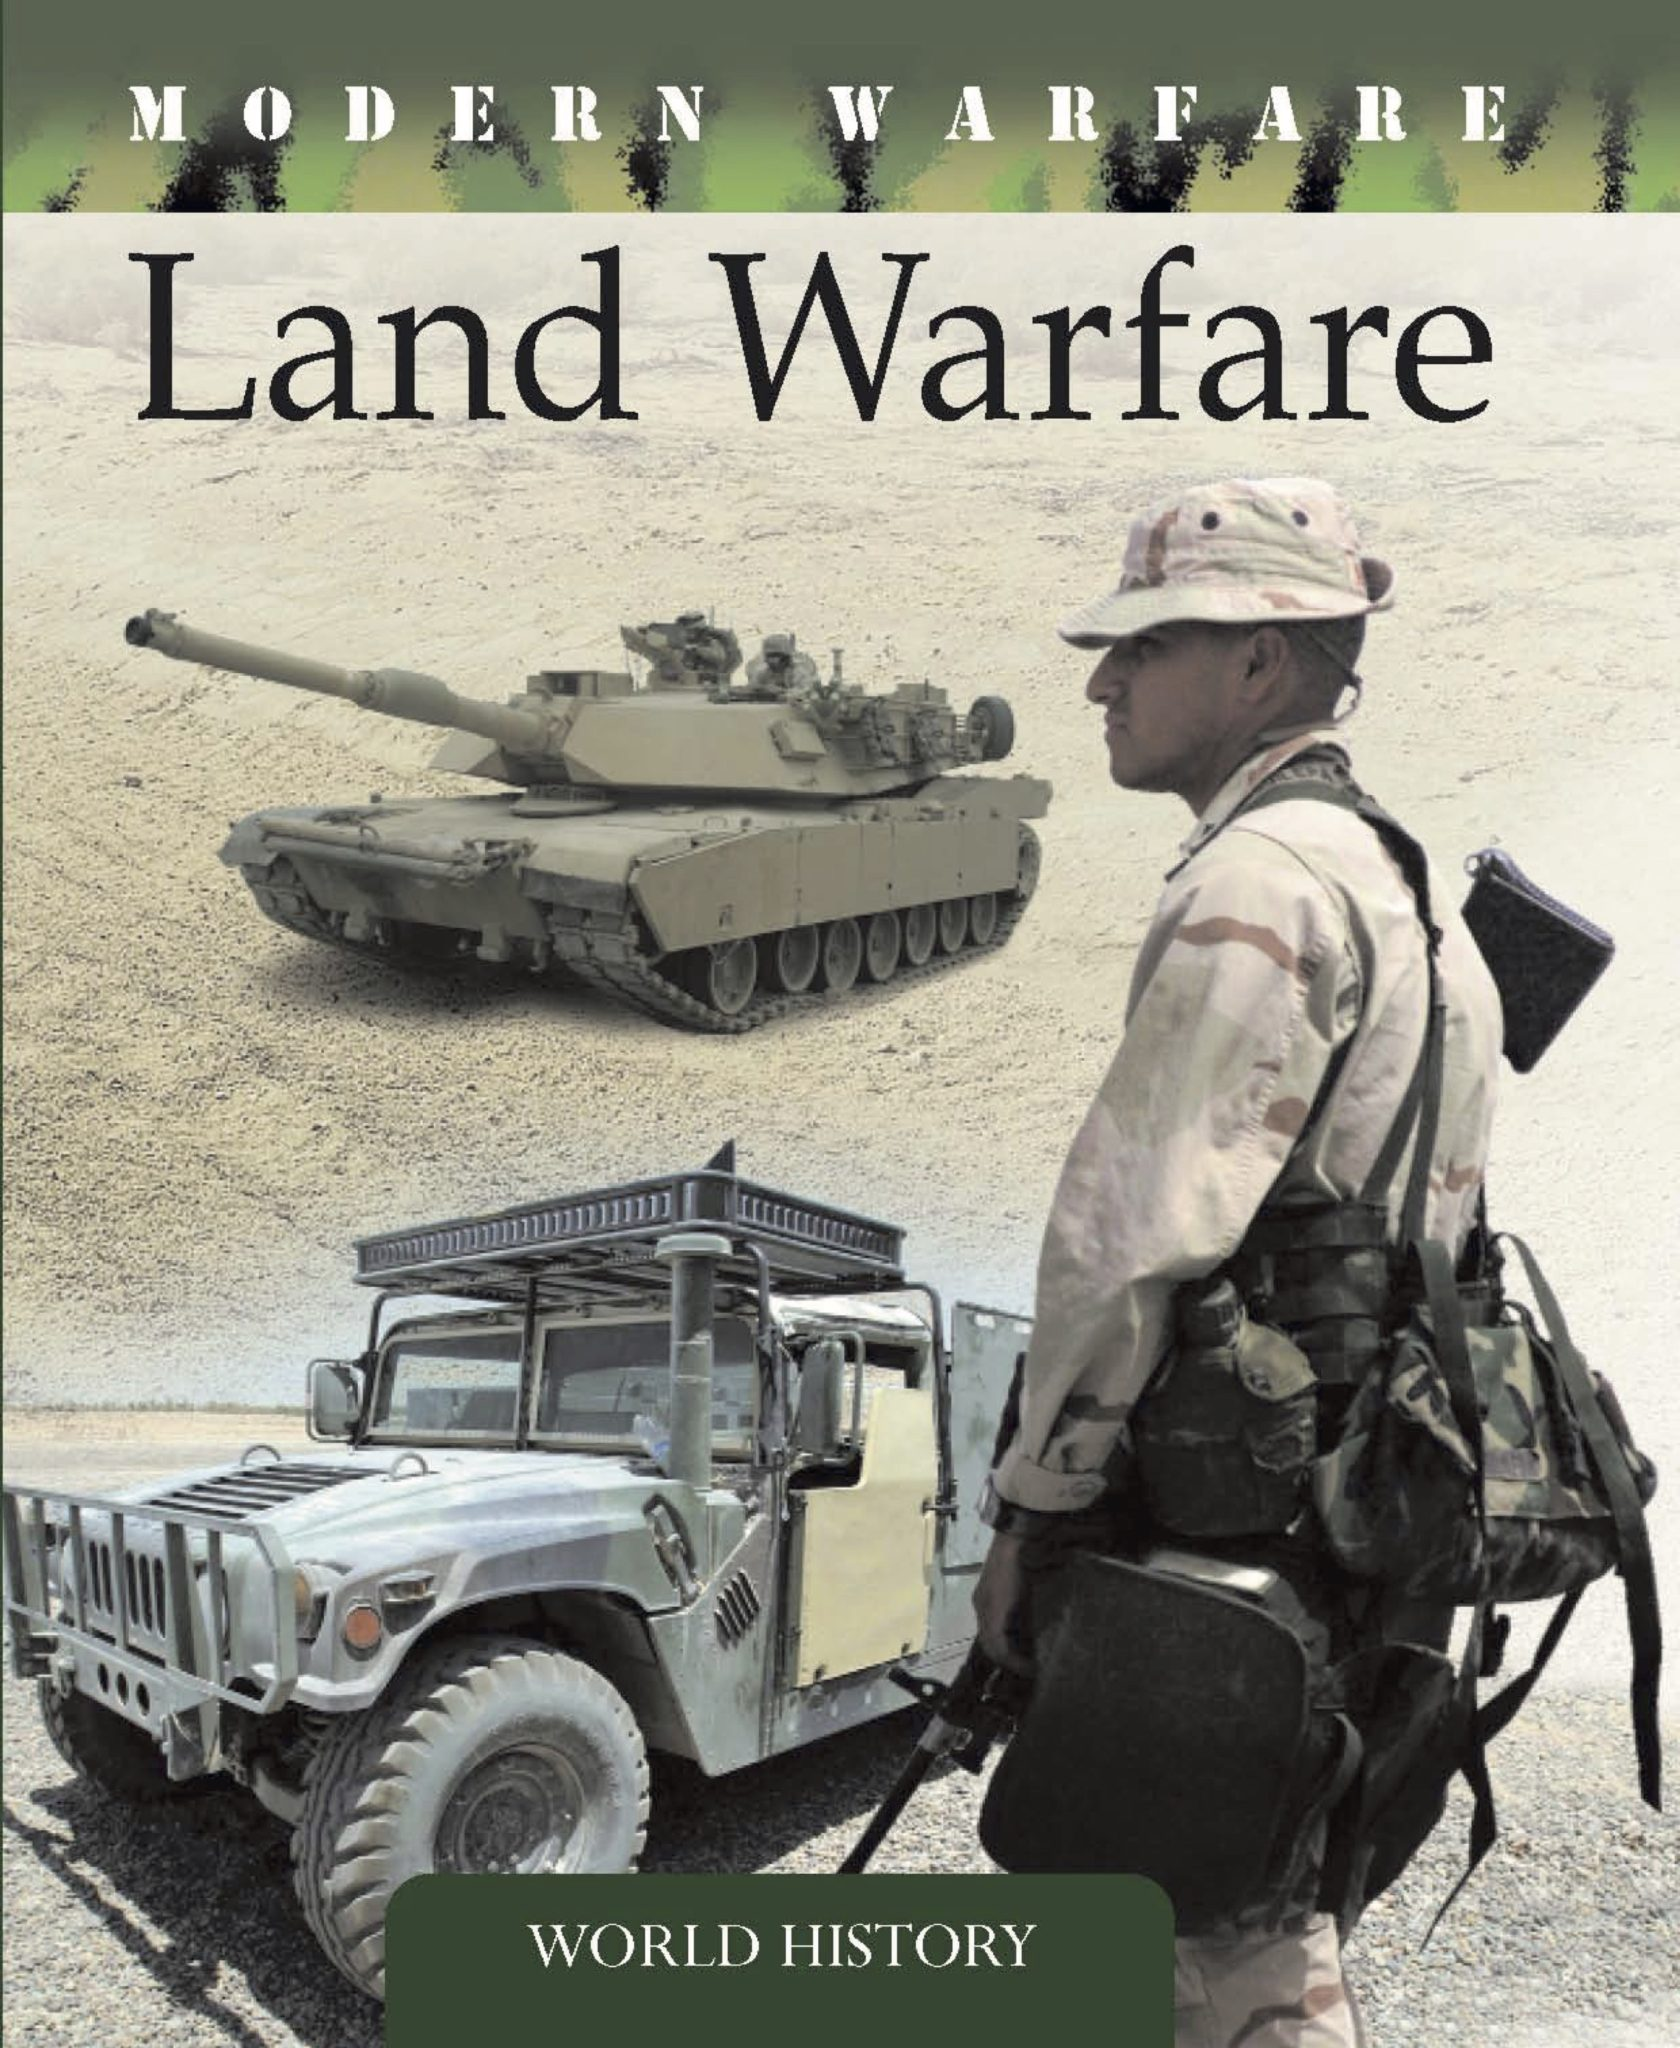 Modern Warfare: Land Warfare